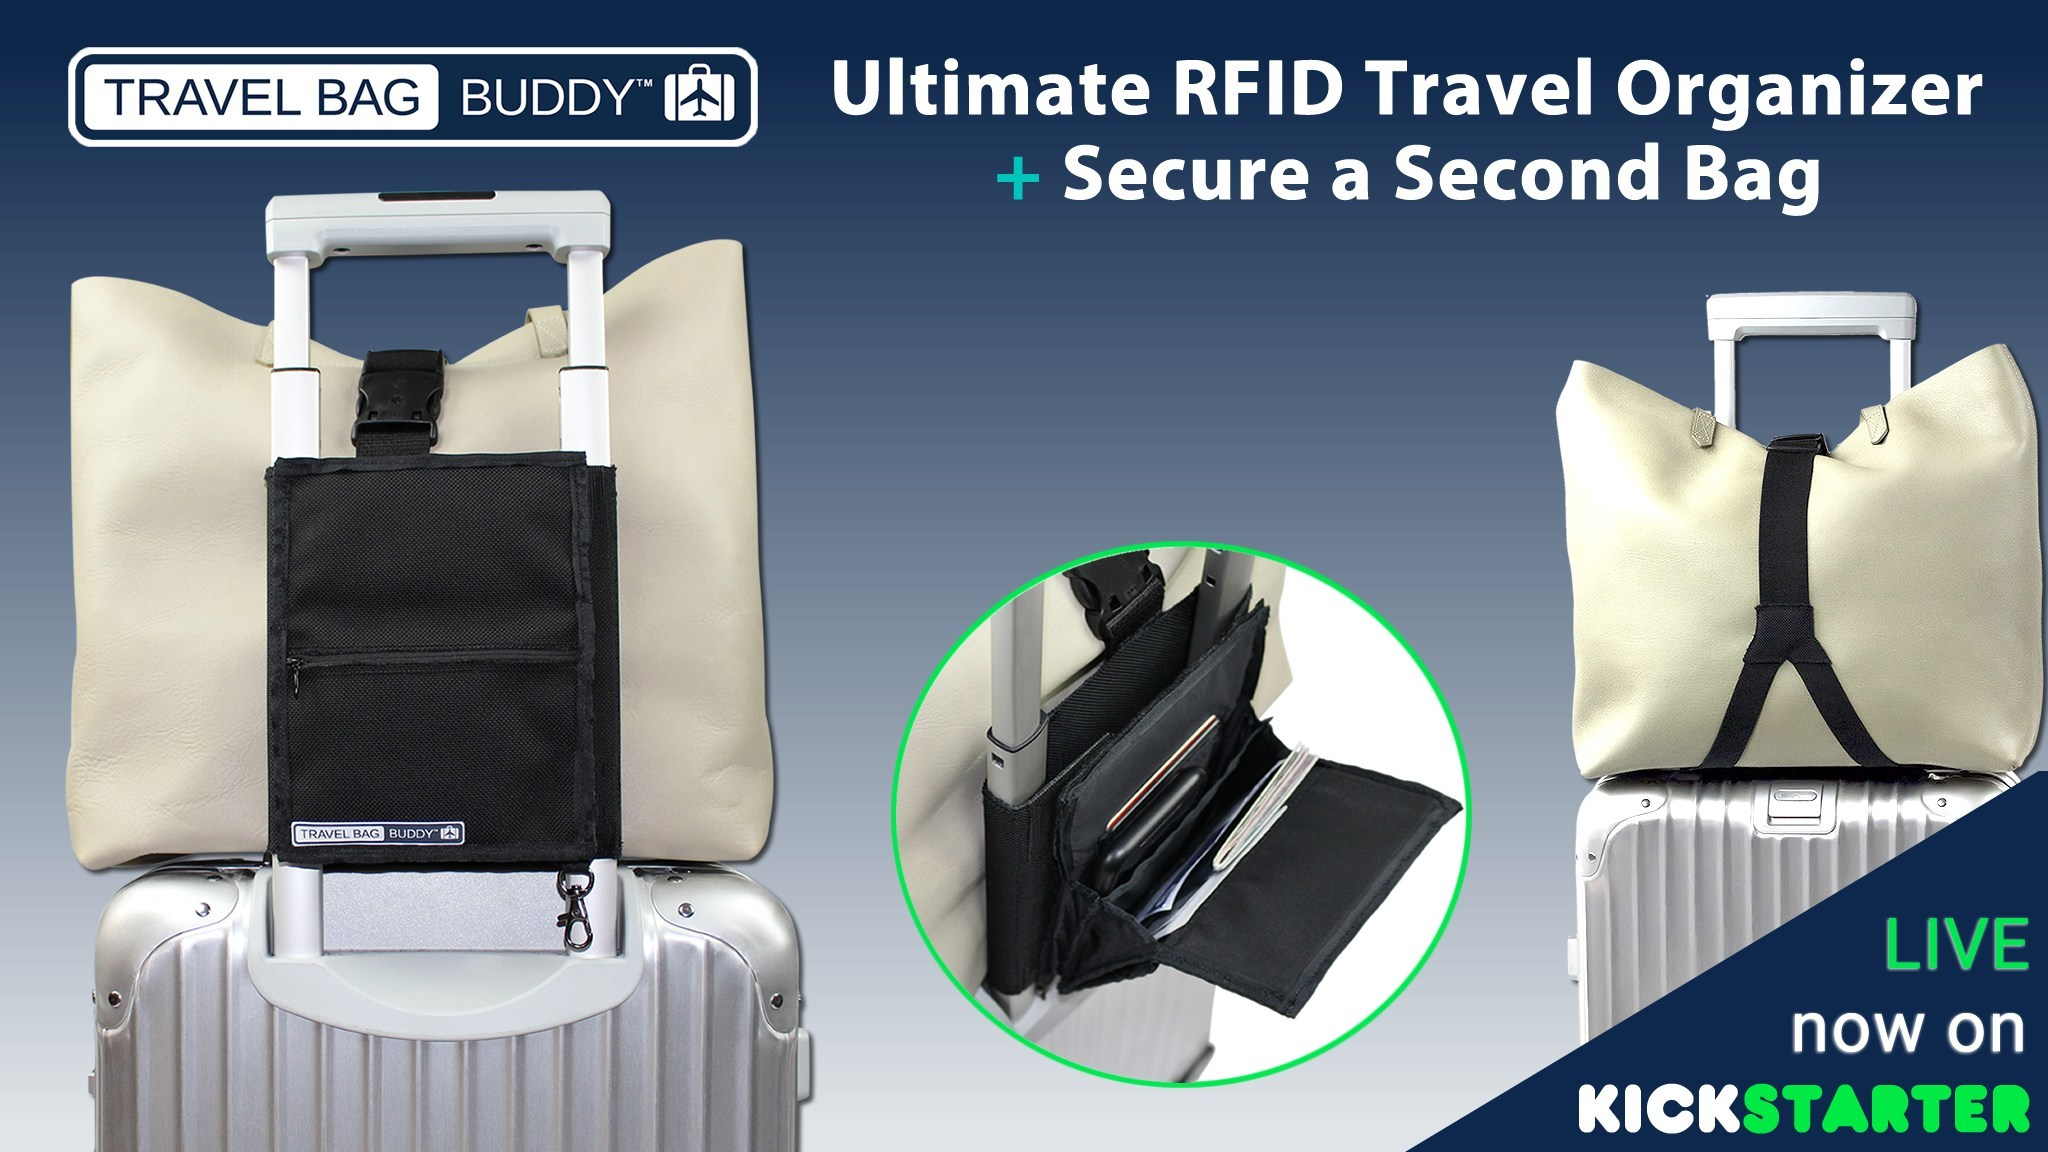 Travel Bag Buddy Finds Success On